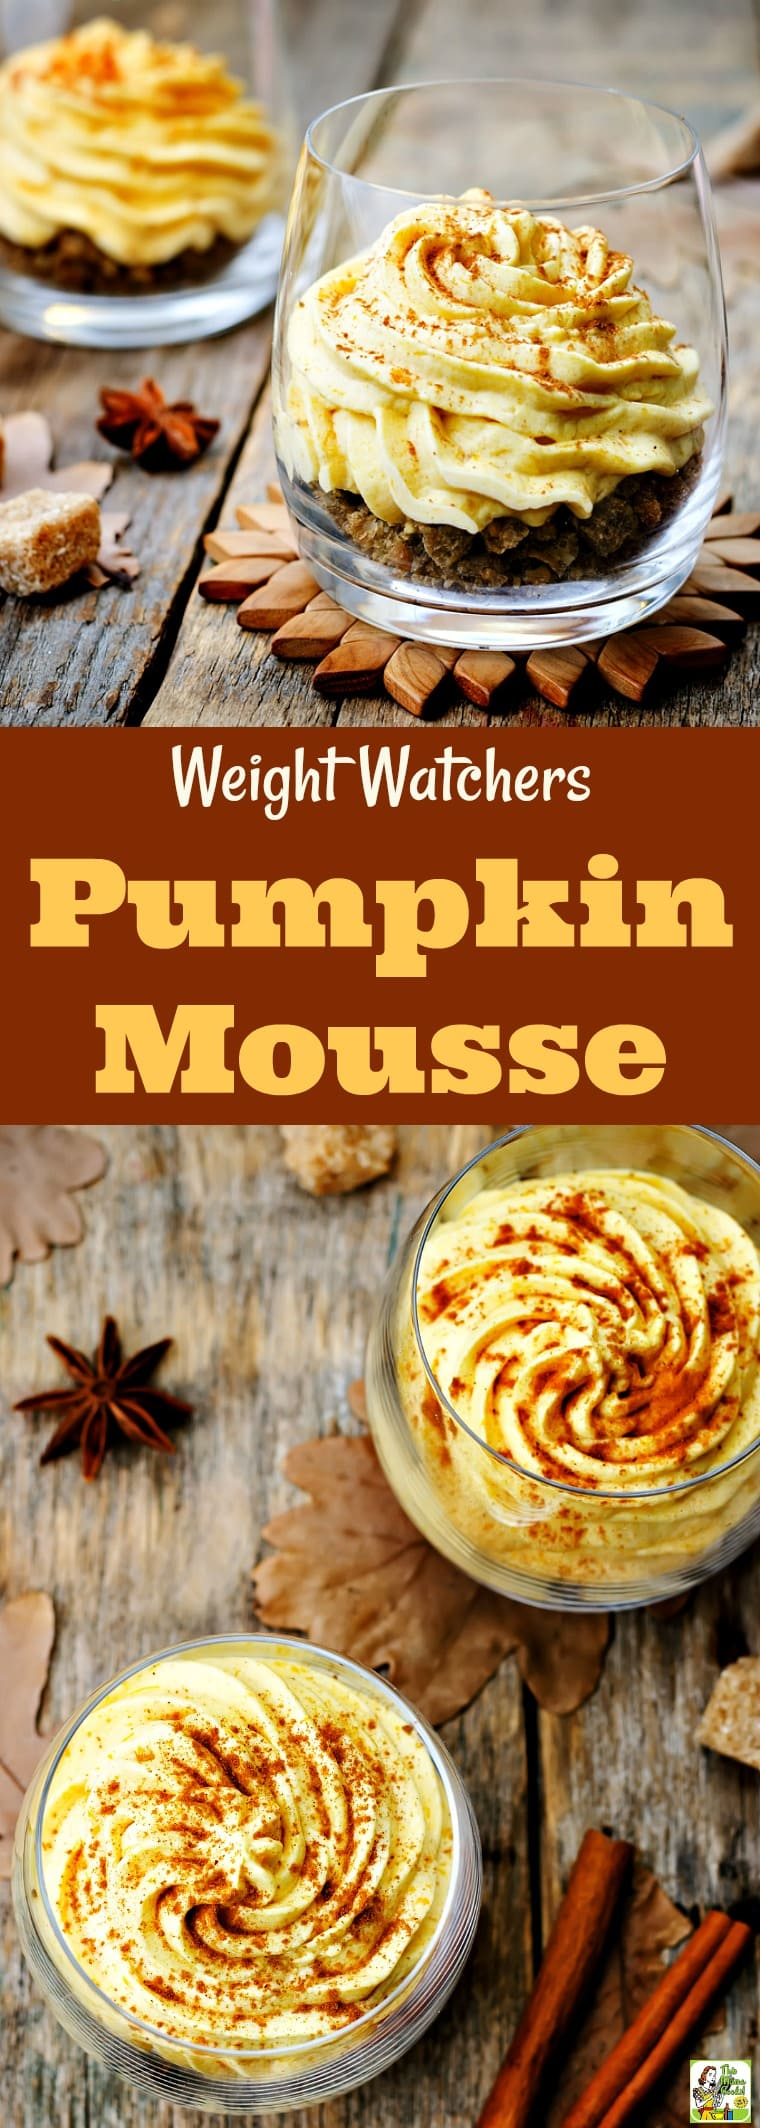 Make Weight Watchers Pumpkin Mousse for fall entertaining. This pumpkin mousse recipe is also known as Weight Watchers Pumpkin Fluff. Naturally gluten free, comes with tips for making this Weight Watchers pumpkin dessert recipe dairy free. #dairyfree #weightwatchers #thanksgiving #halloween #pumpkinfluff #recipe #easy #recipeoftheday #glutenfree #easyrecipes #pumpkinrecipe #pumpkin #pumpkinspice #snack #snacks #dessert #dessertrecipes